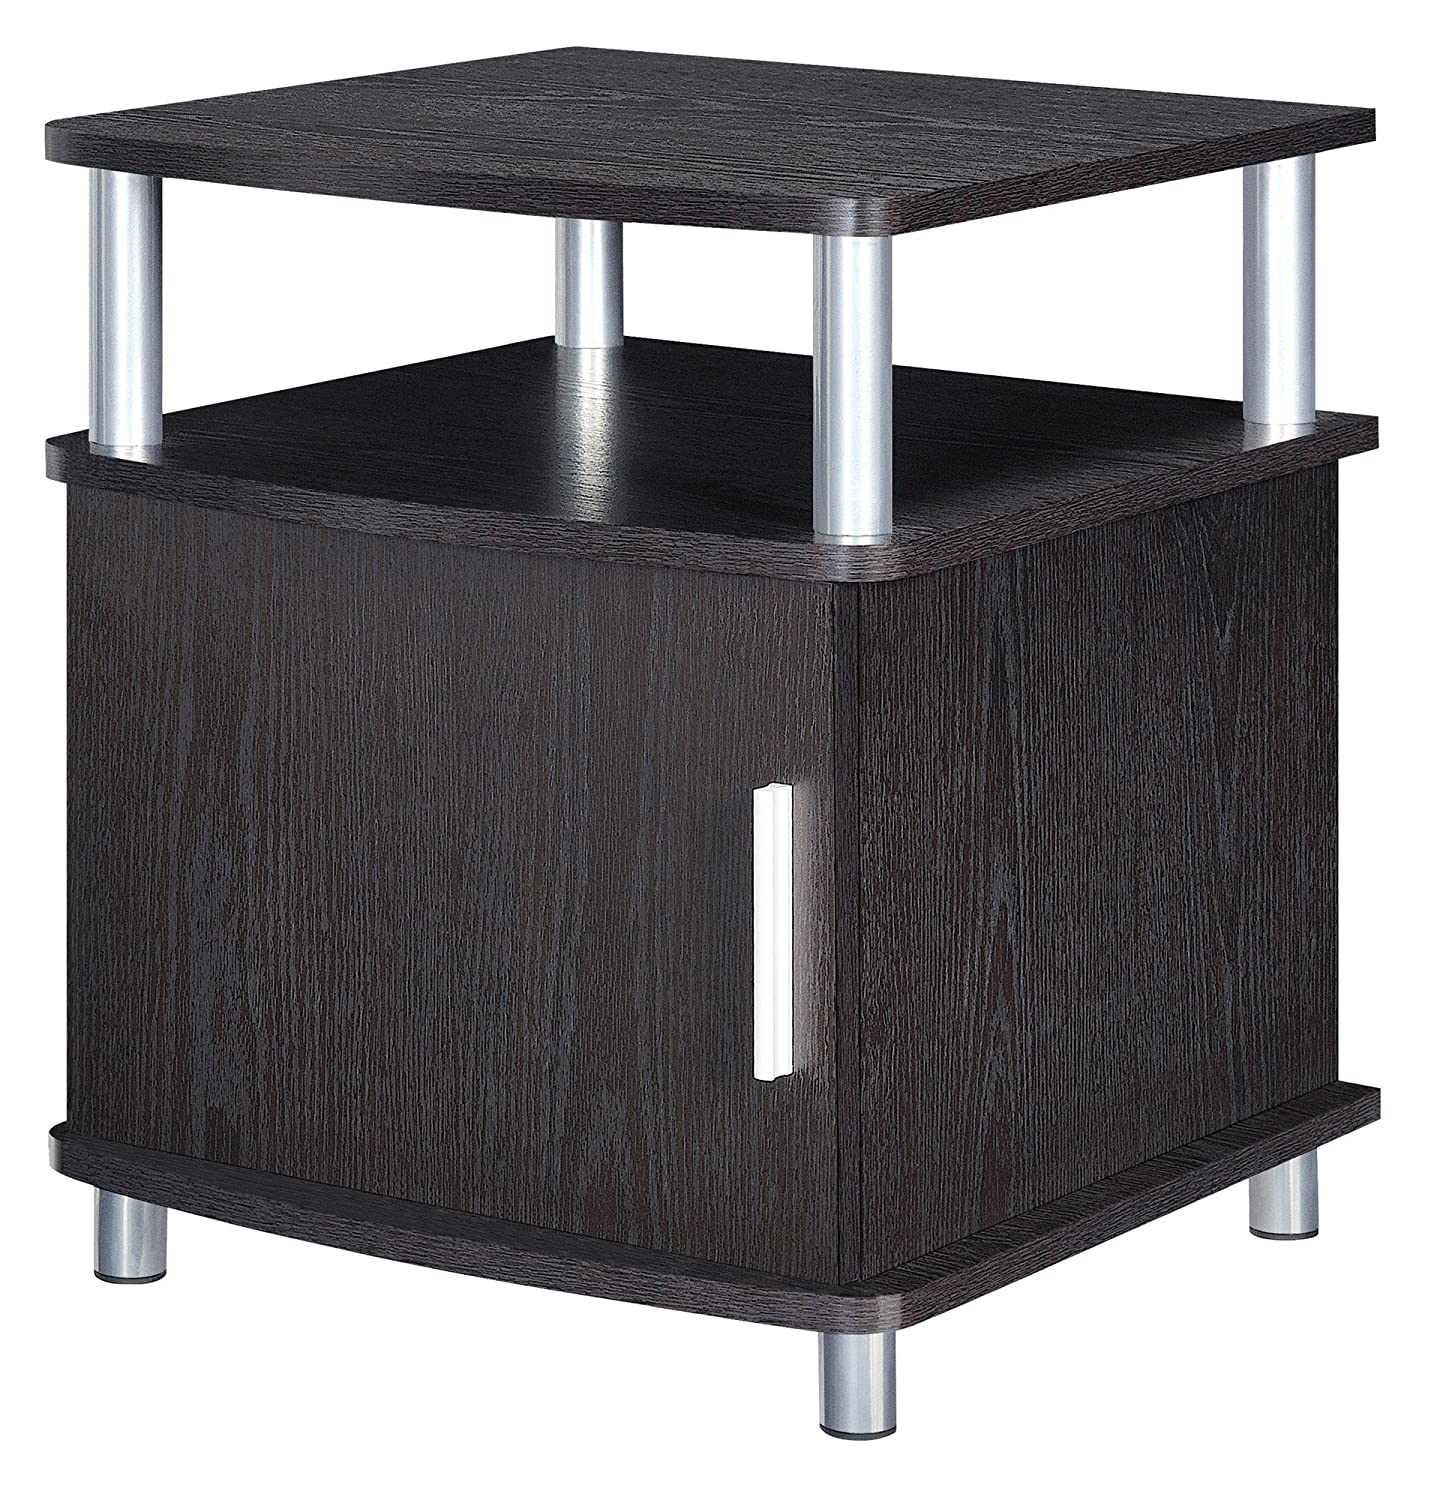 Ameriwood Home Carson End Table with Storage, Cherry/Black Dorel Home Furnishings 5083196